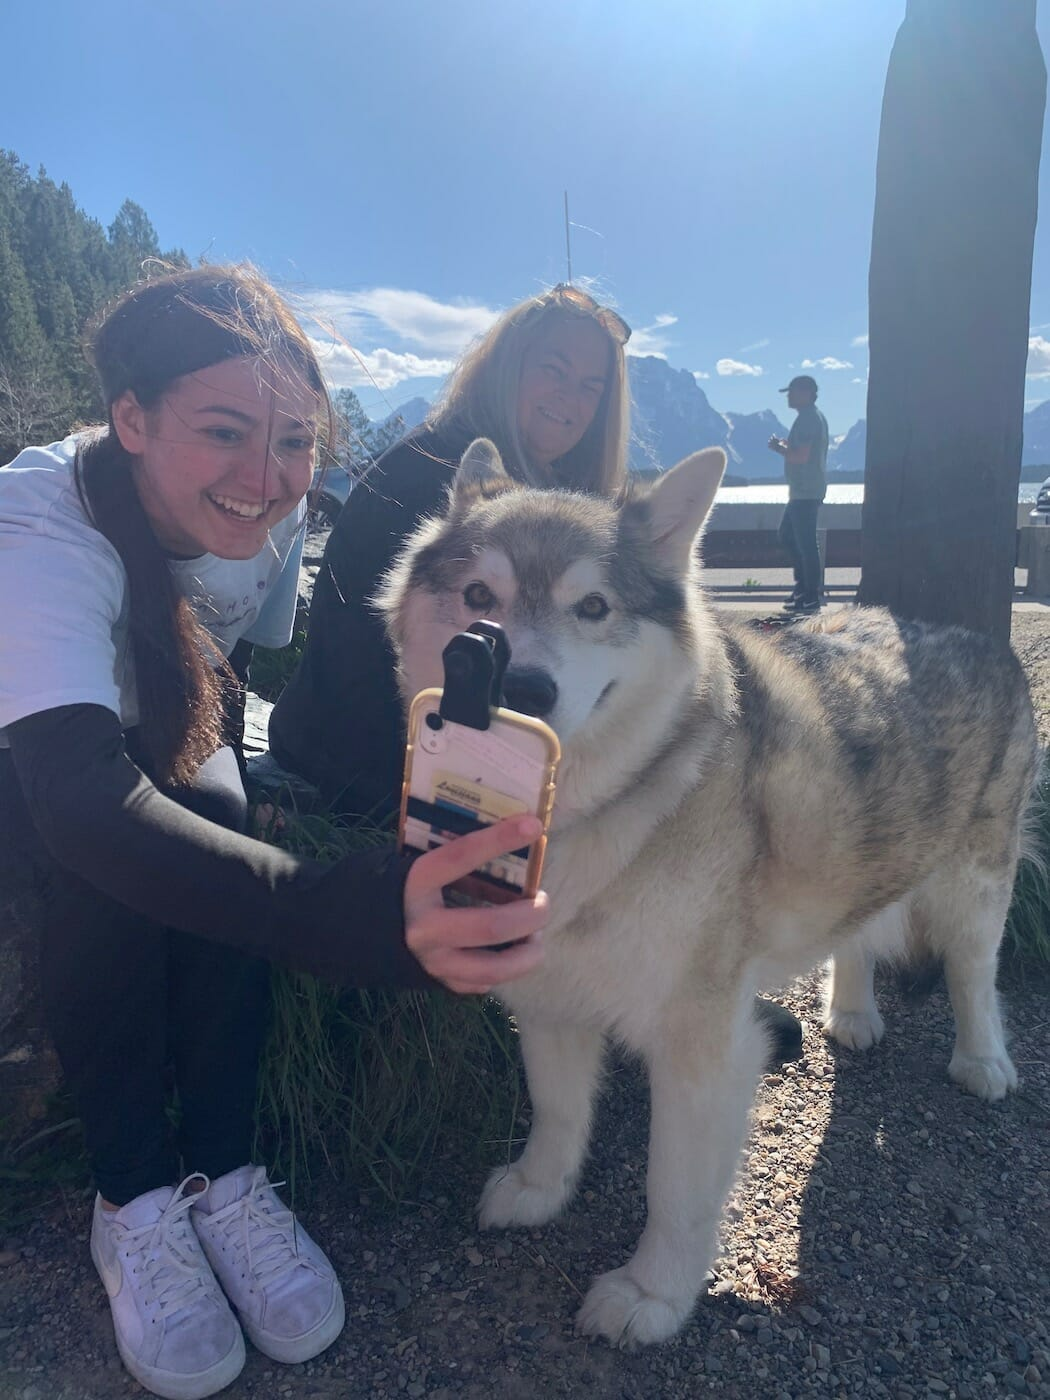 girl taking a selfie with a dog